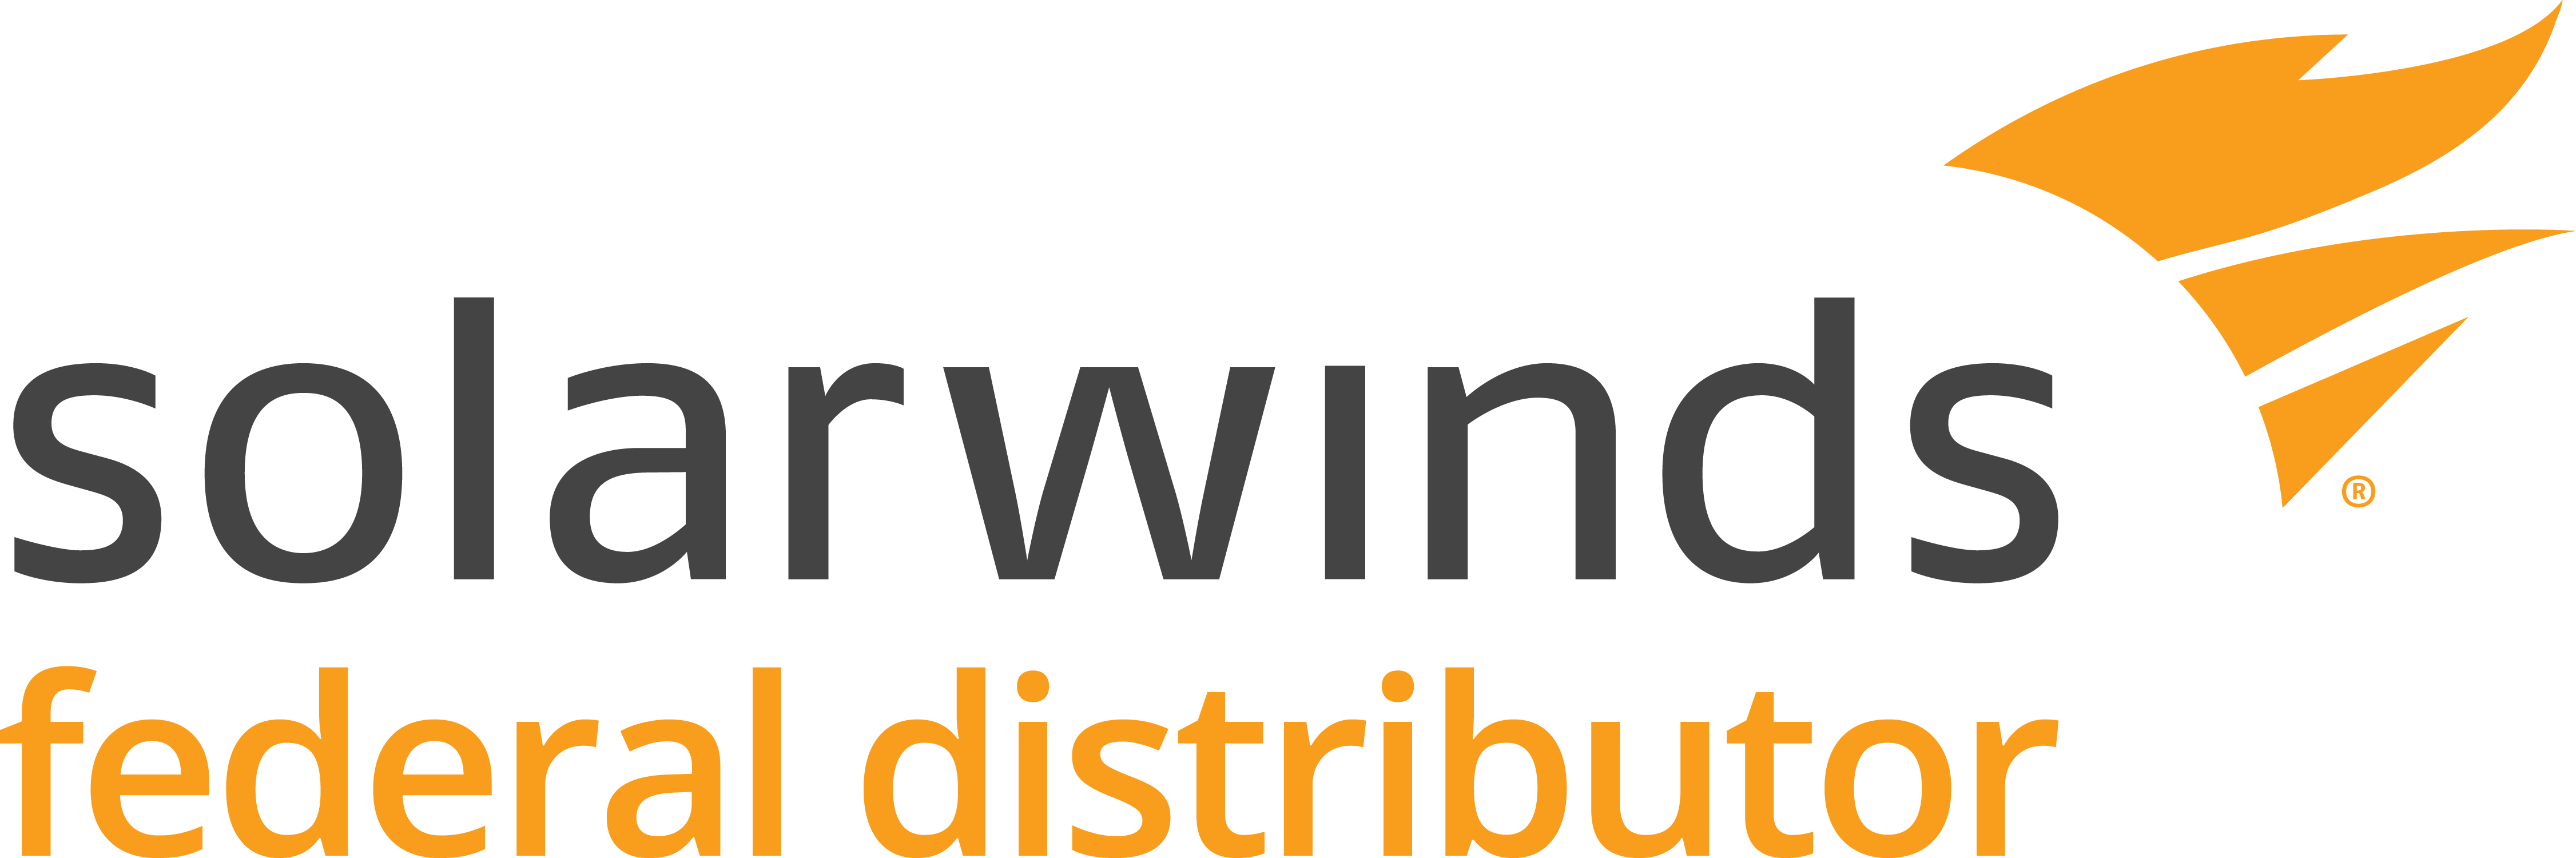 Logo for Solarwinds Federal Distributor